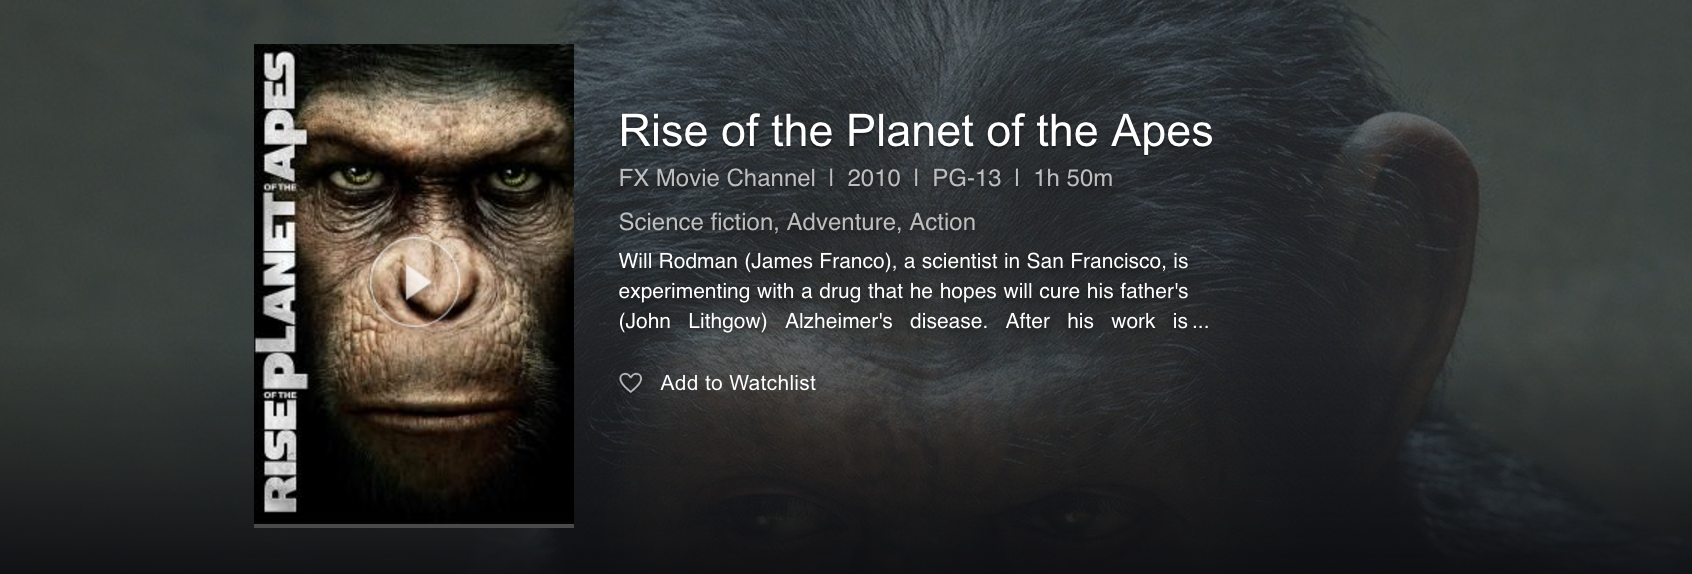 rise of the planet of the apes movie film info